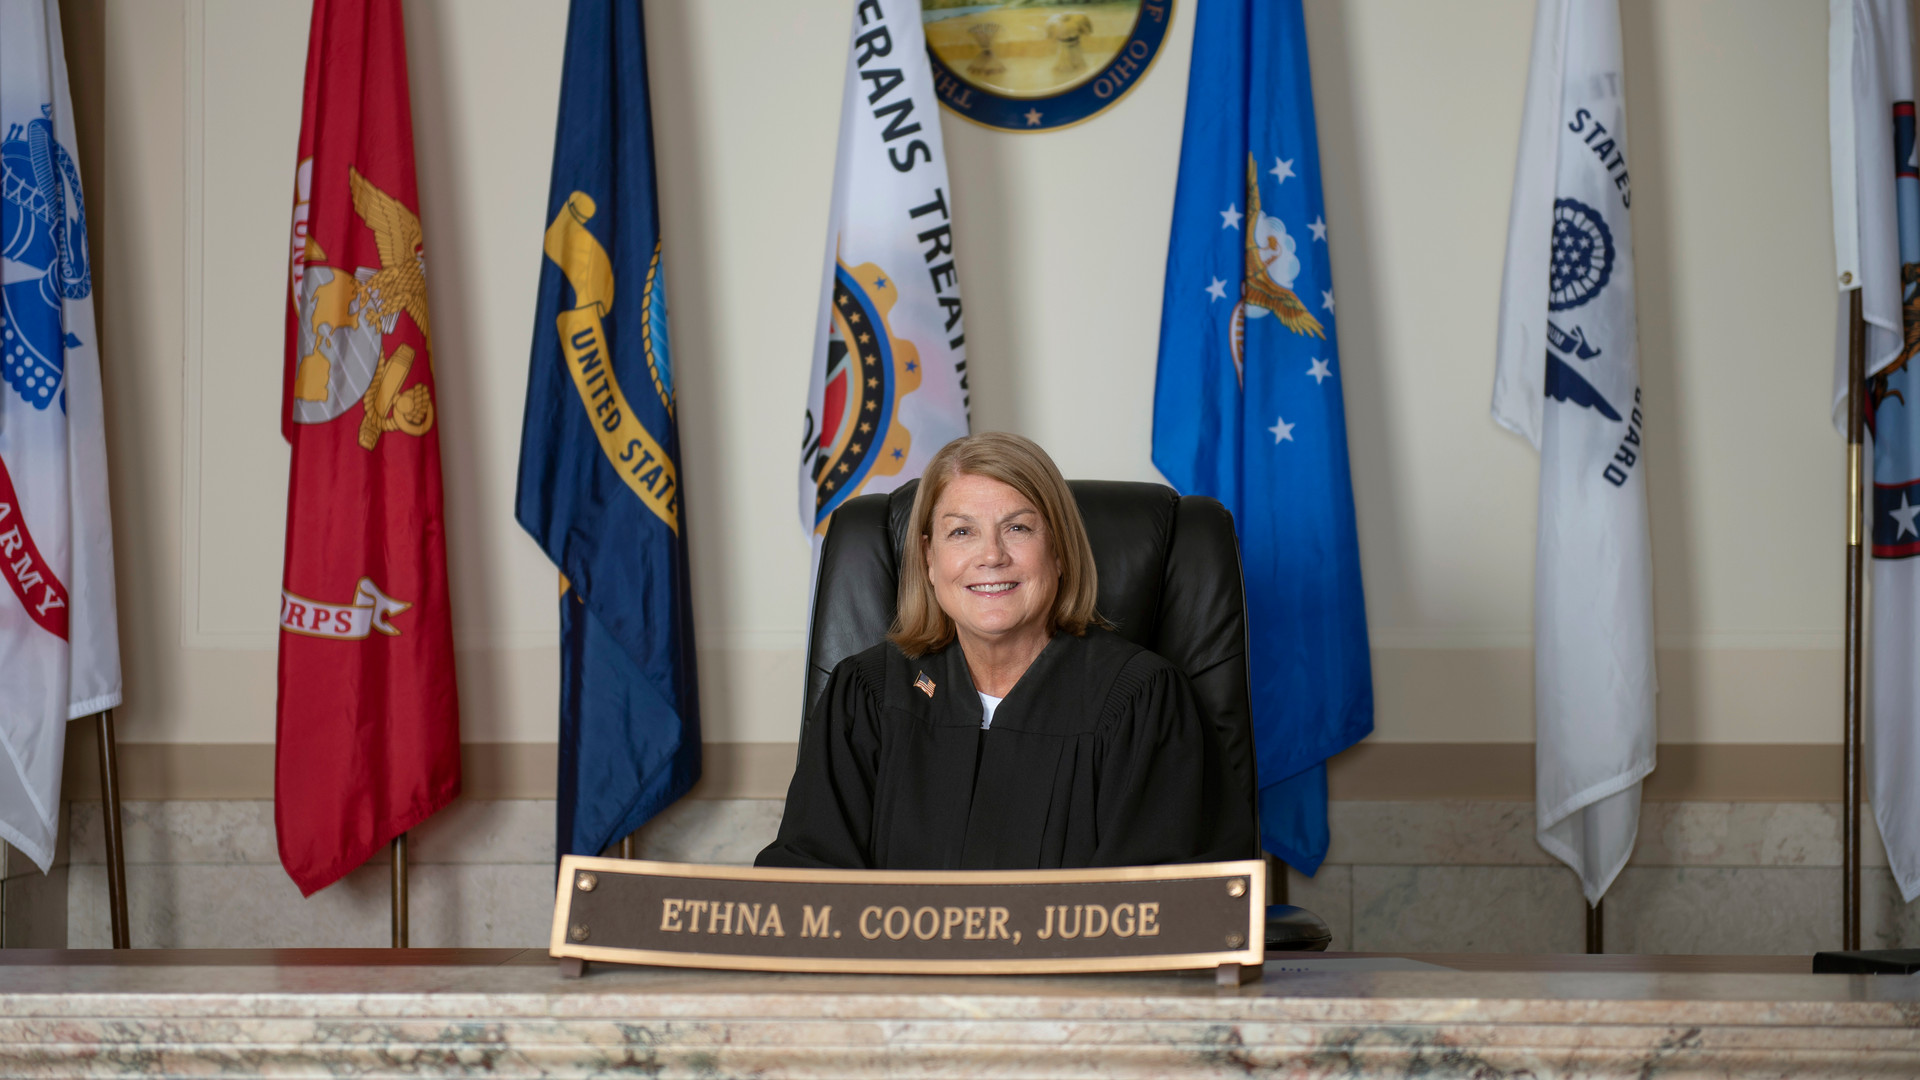 Judge Ethna Cooper